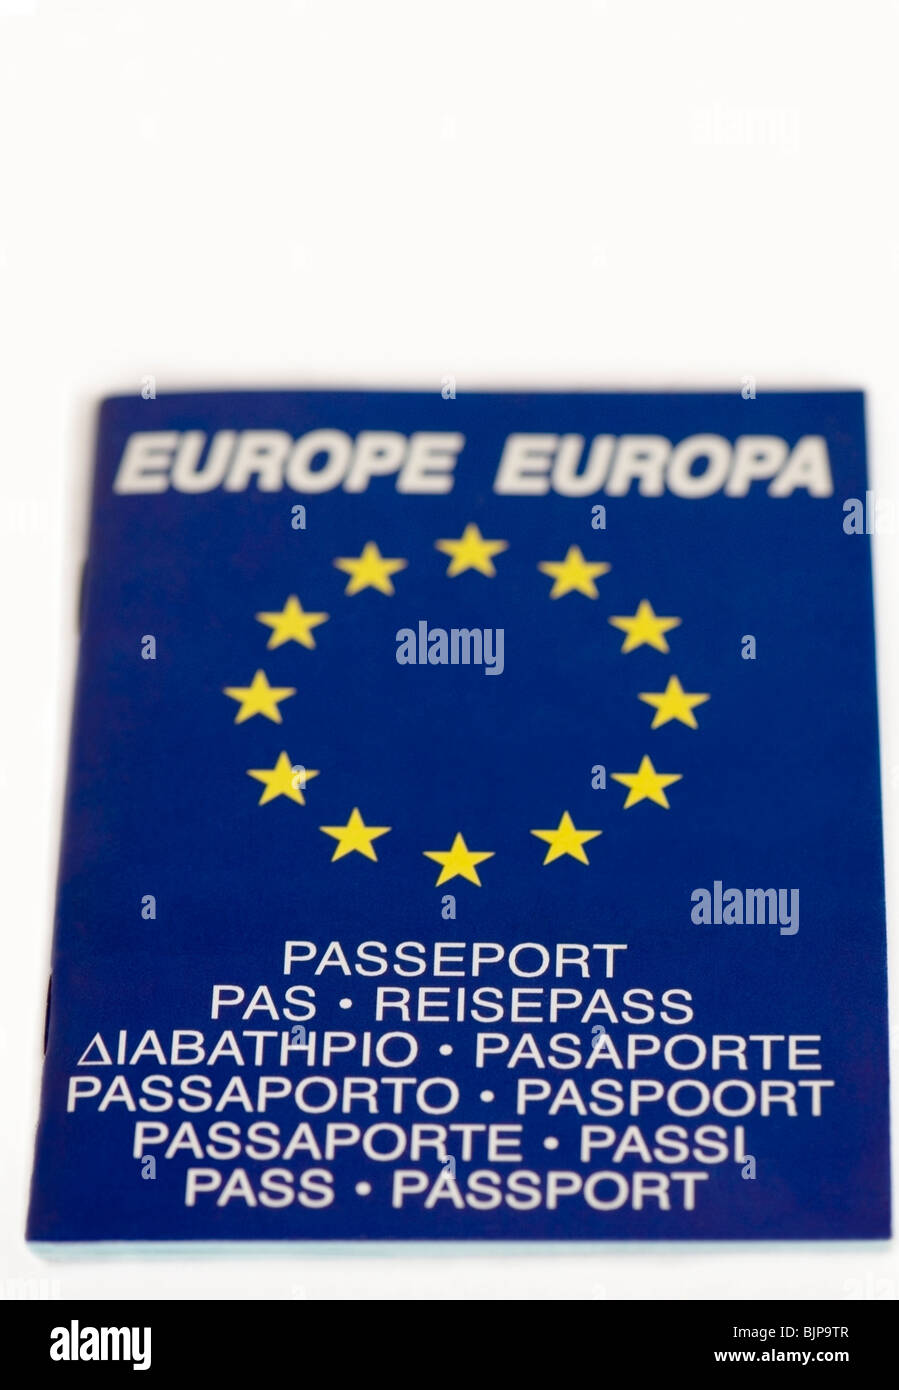 Bilingual writing, words, European Union passport with yellow iconic stars, graphics on white background, Europe, - Stock Image